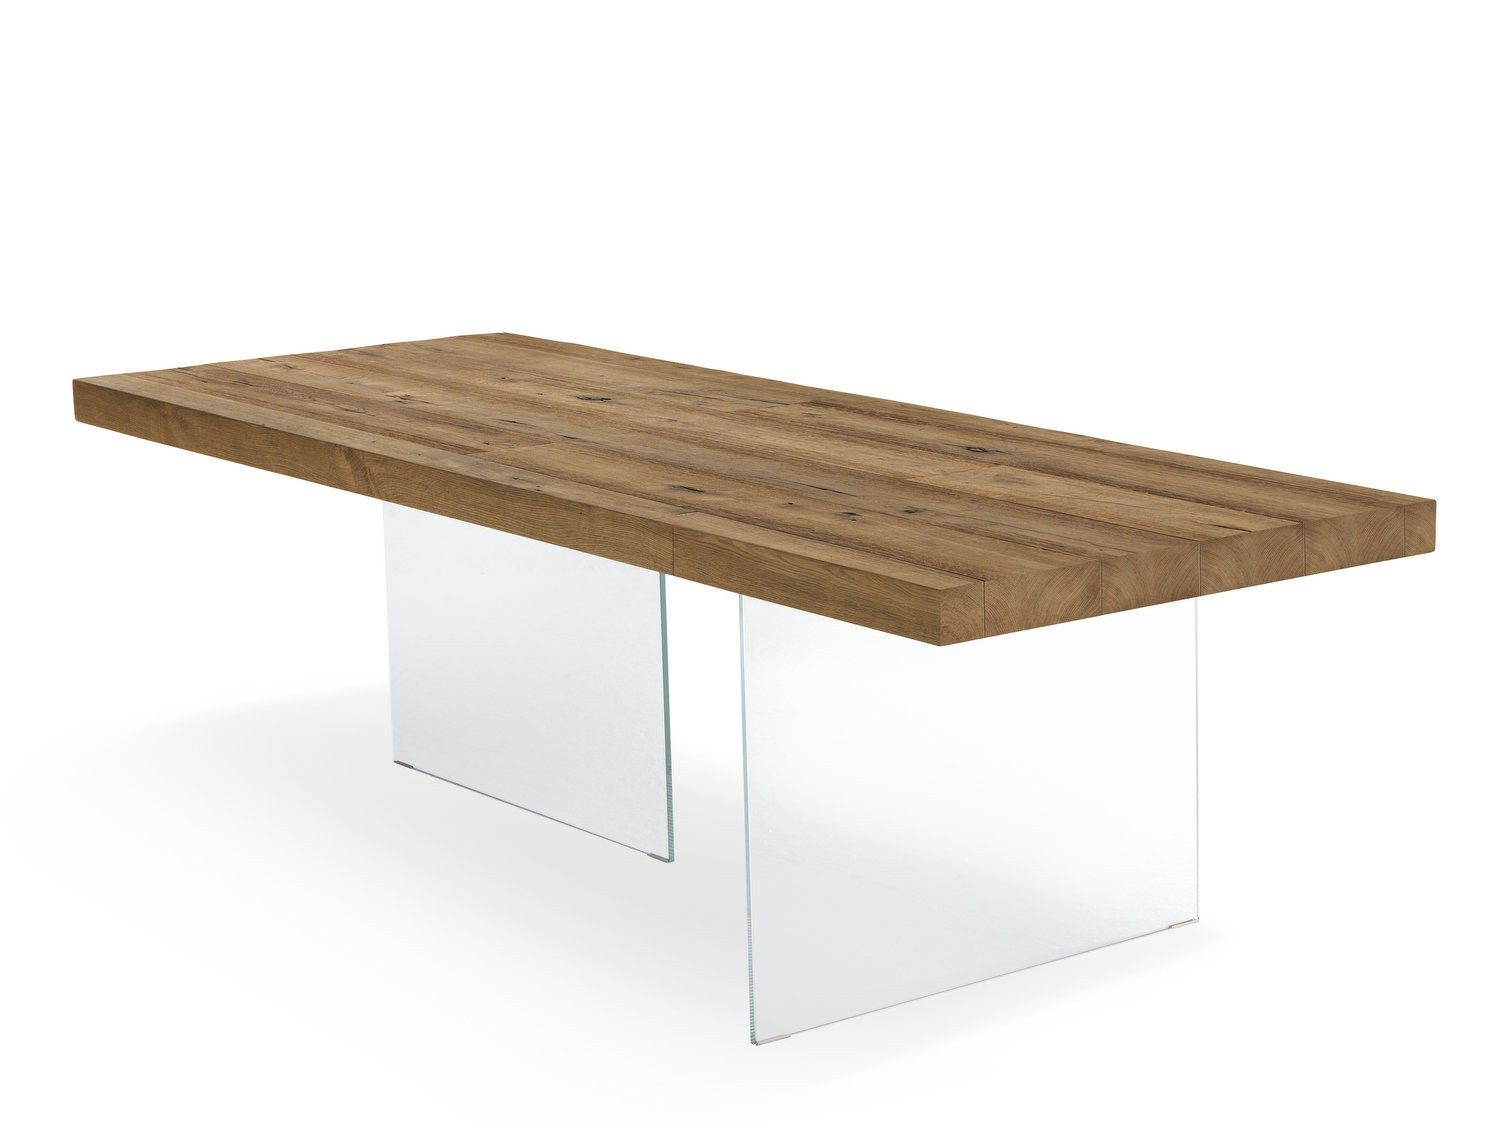 Lago Tavolo ~ Table with wireless charging system air sound by lago design